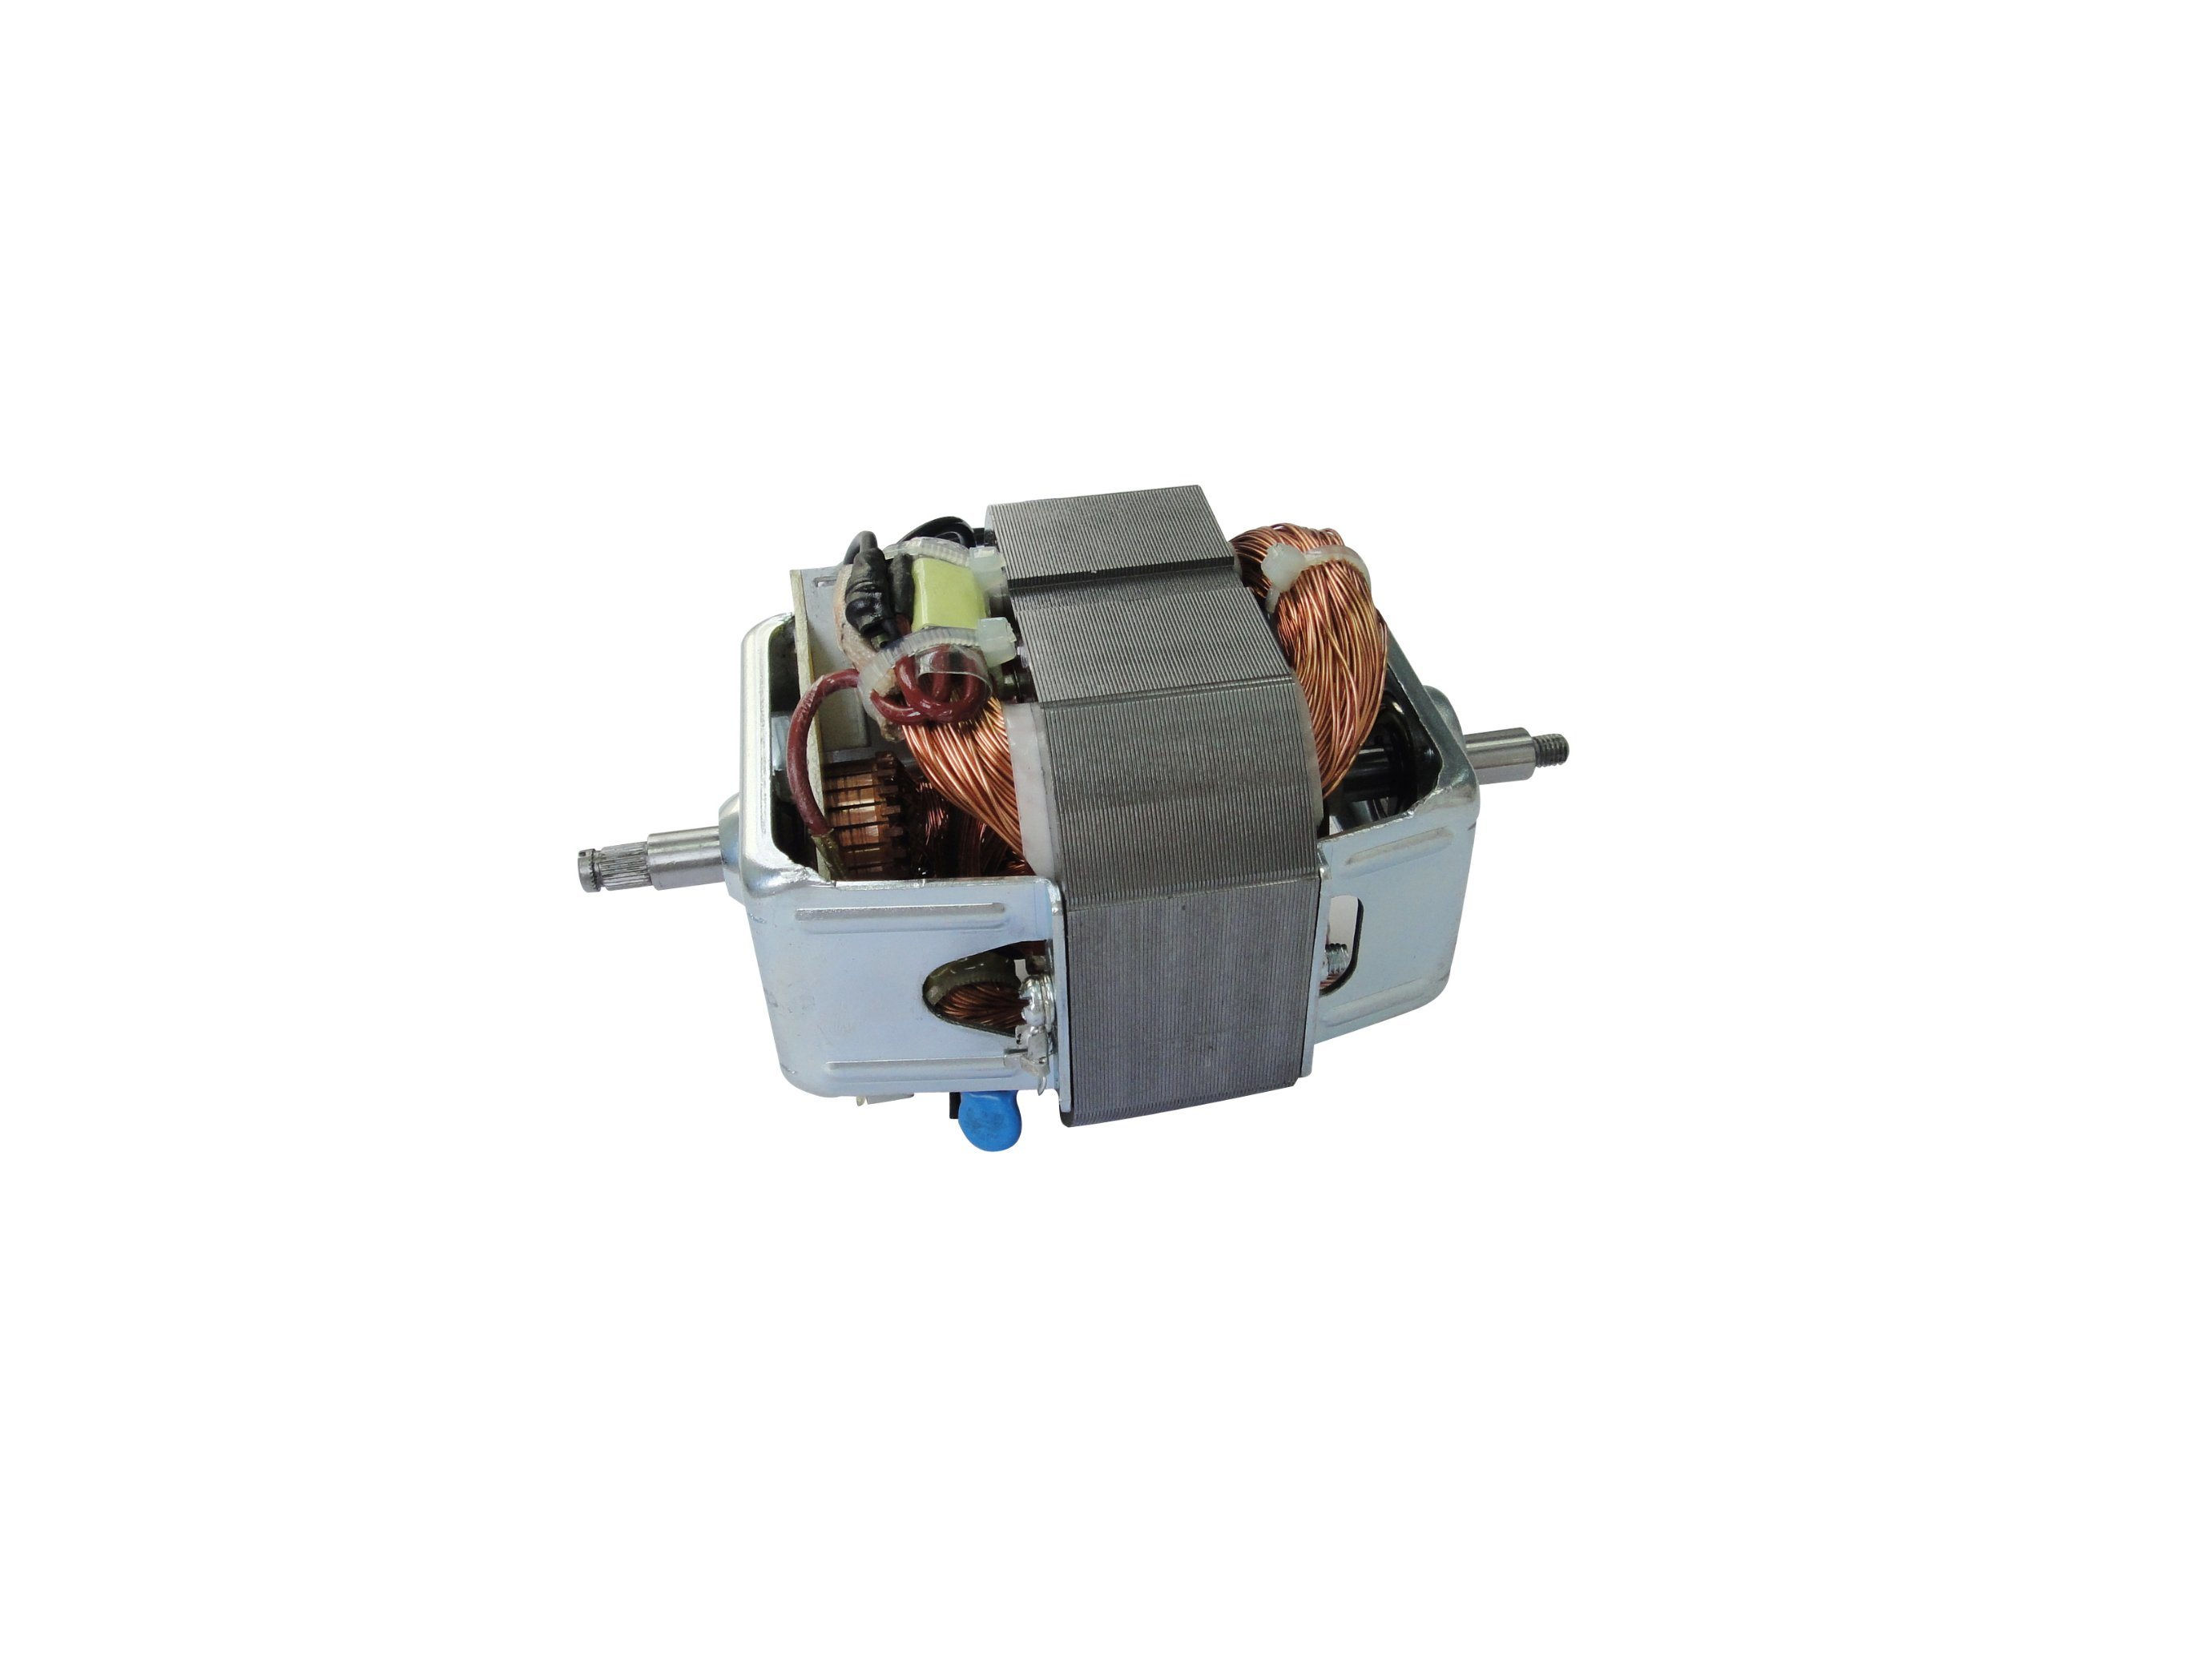 AC Universal Motor for Food Processor with CCC, Ce, RoHS Approved